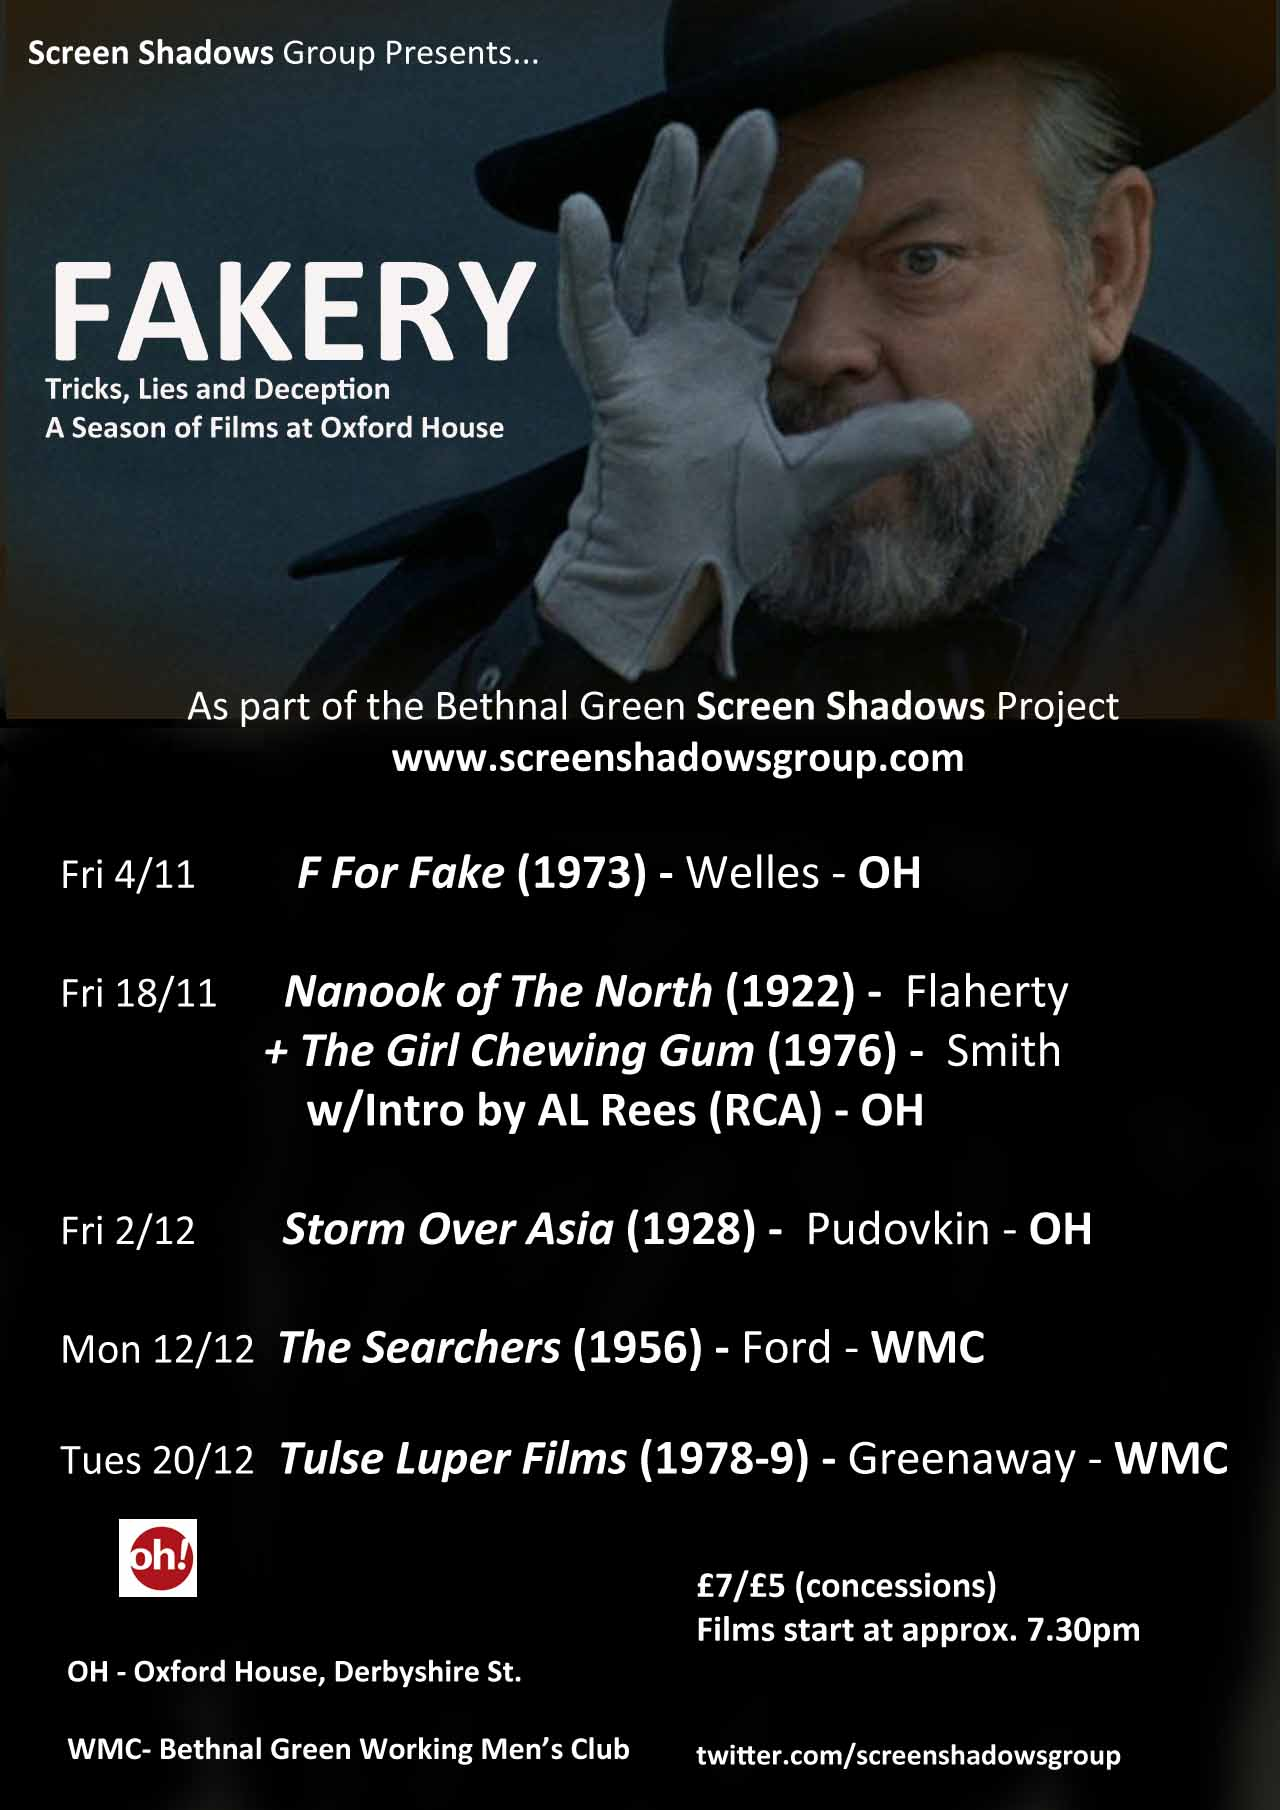 Fakery. The